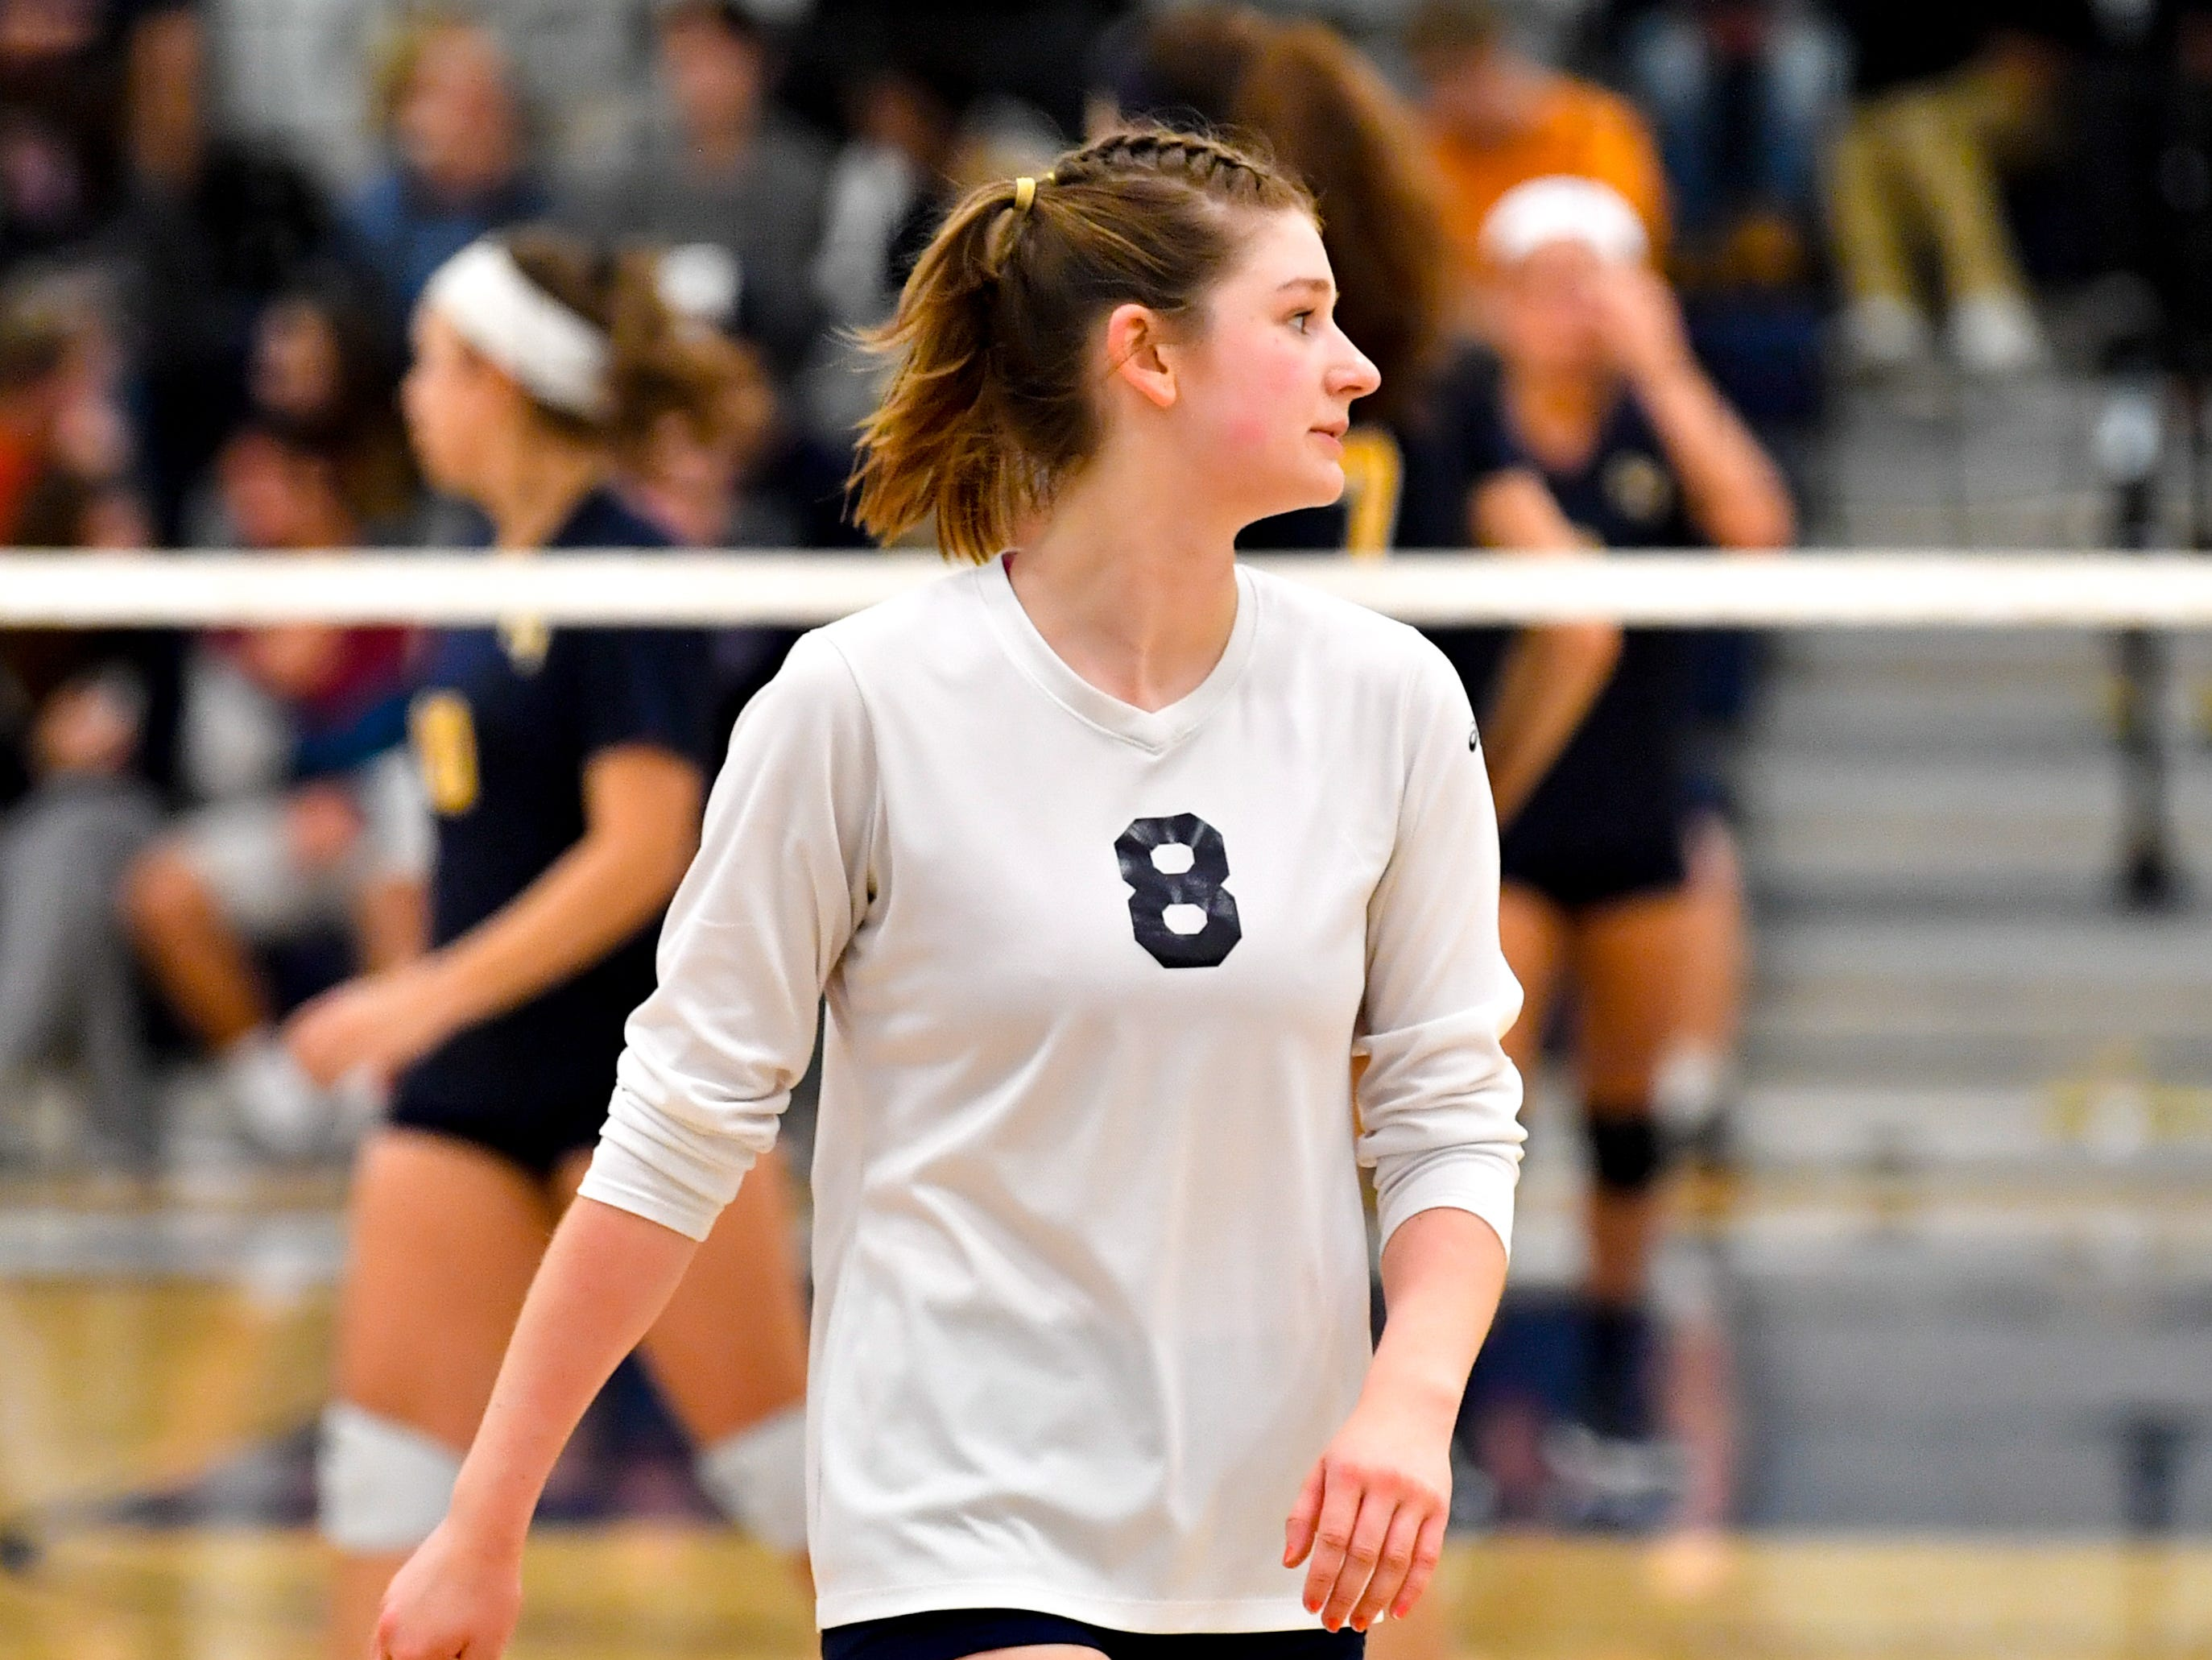 Julia Rill (8) walks to the huddle during the District 3 Class 3A girls' volleyball quarterfinals between West York and Eastern York at West York High School, October 30, 2018. The Bulldogs defeated the Golden Knights 3-0.